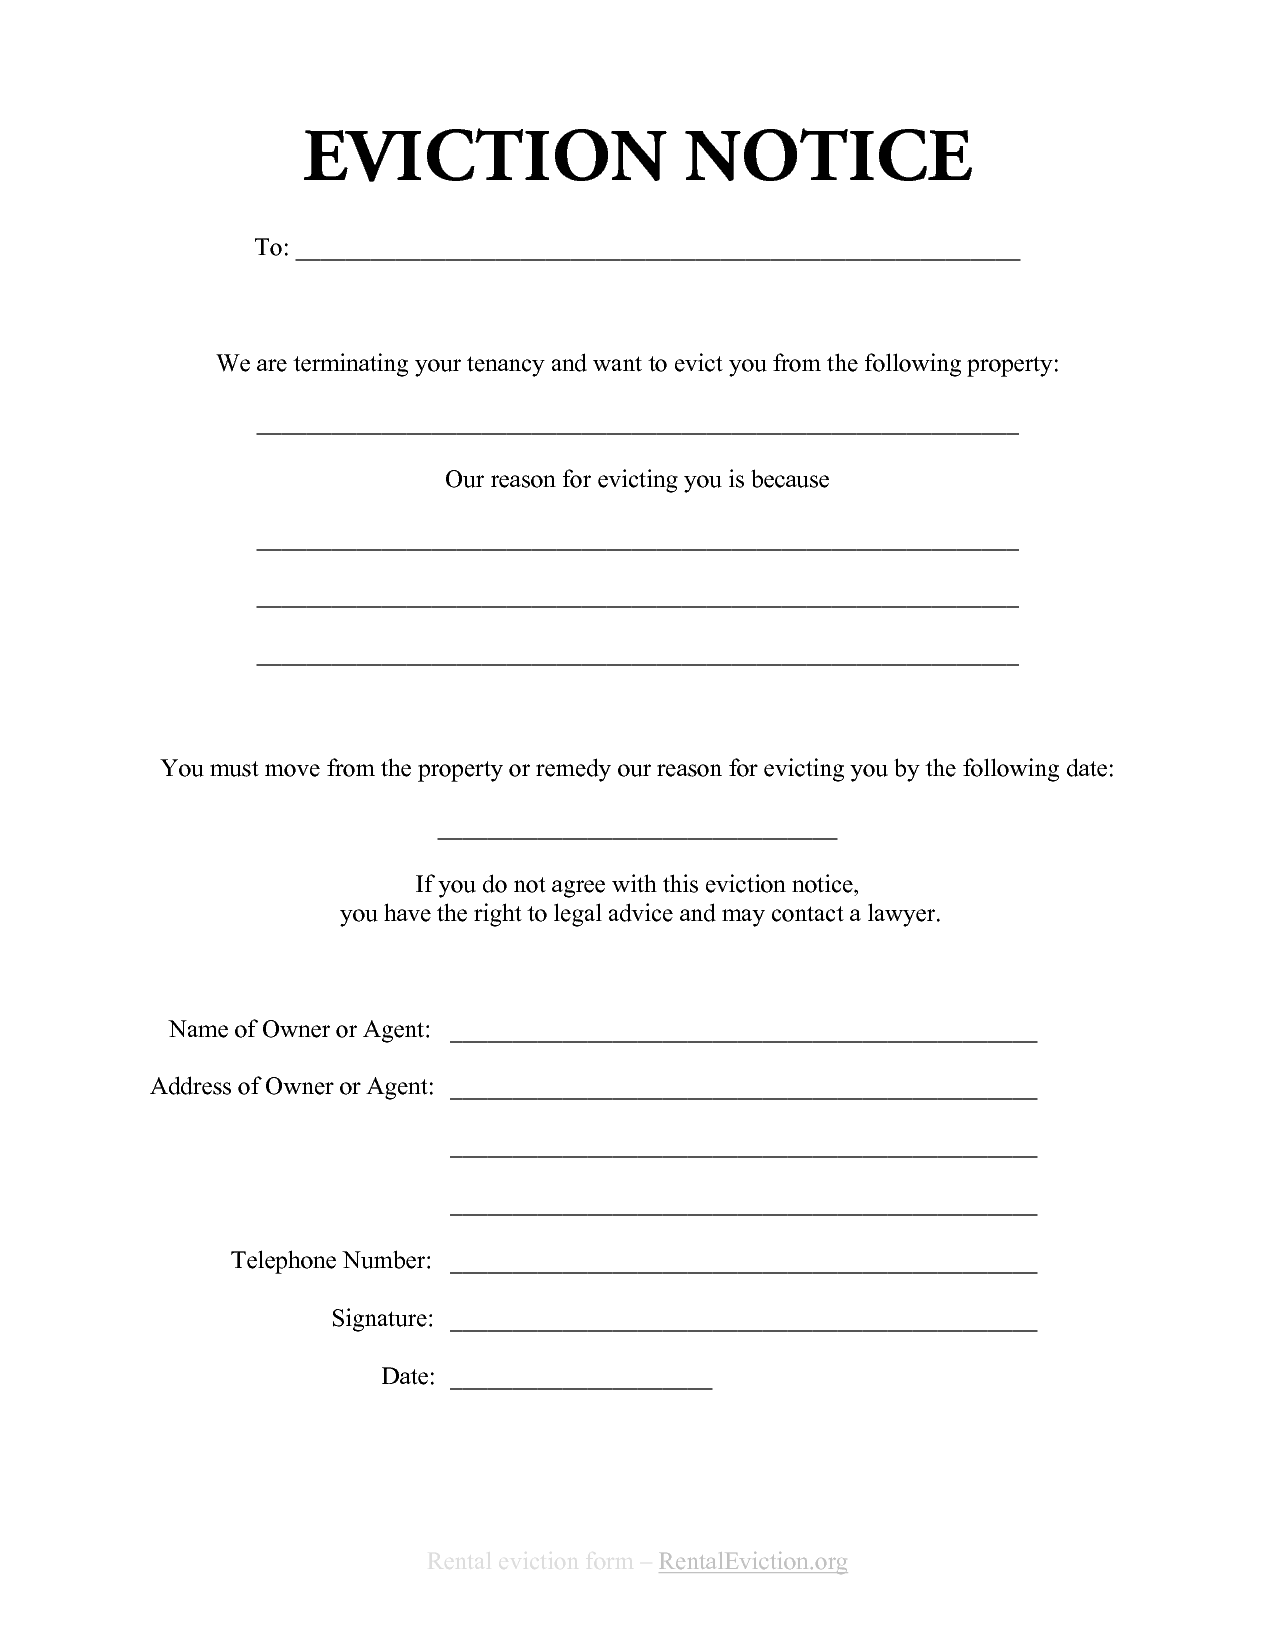 receipt template rent receipt and cash receipt forms print out eviction notices rental eviction notice